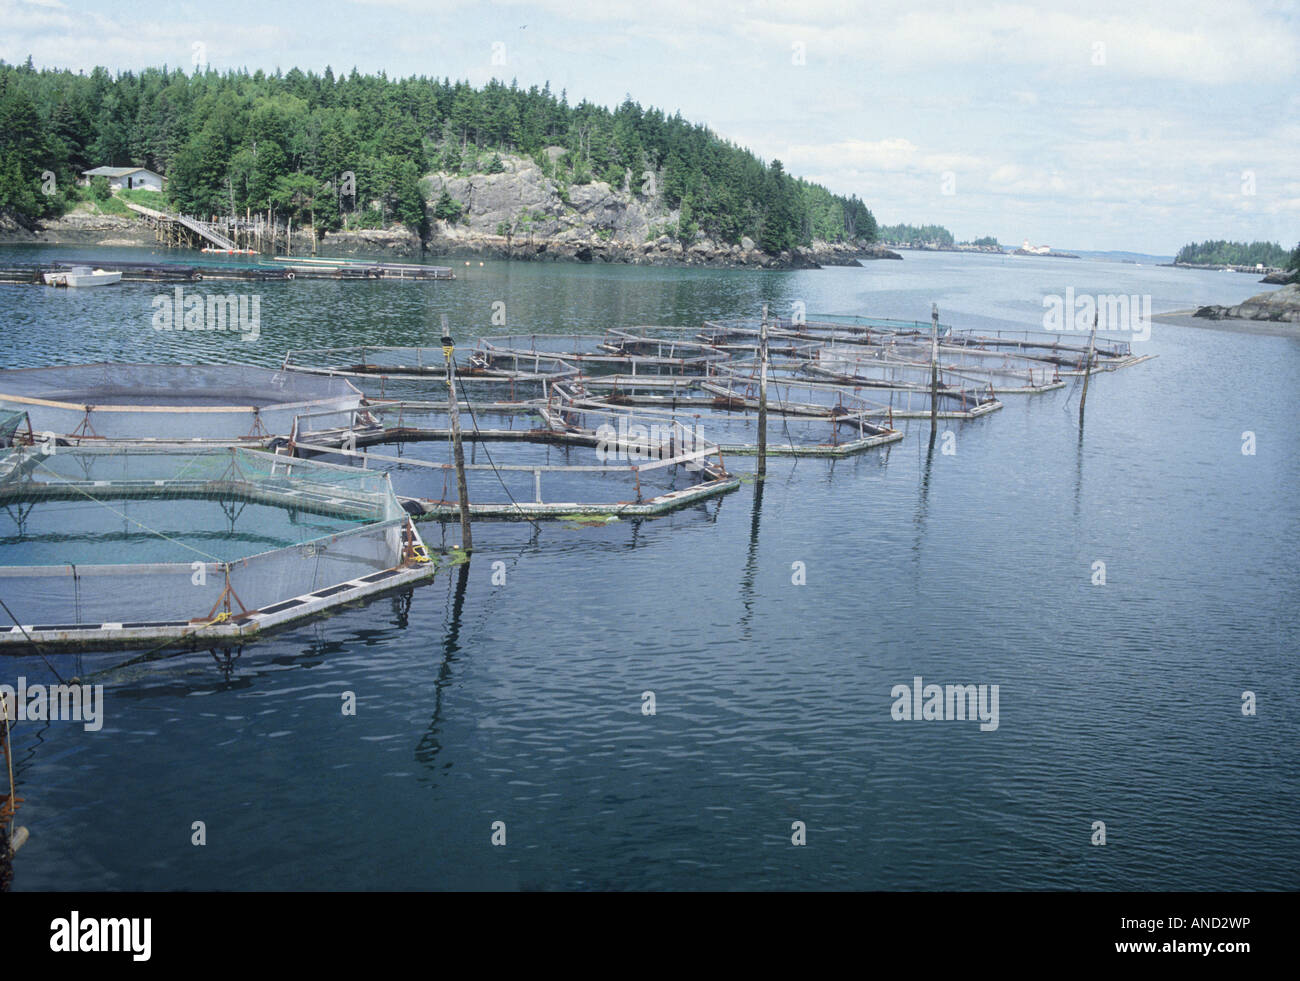 Saltwater salmon pens lubec maine usa atlantic ocean food for Saltwater fish pond